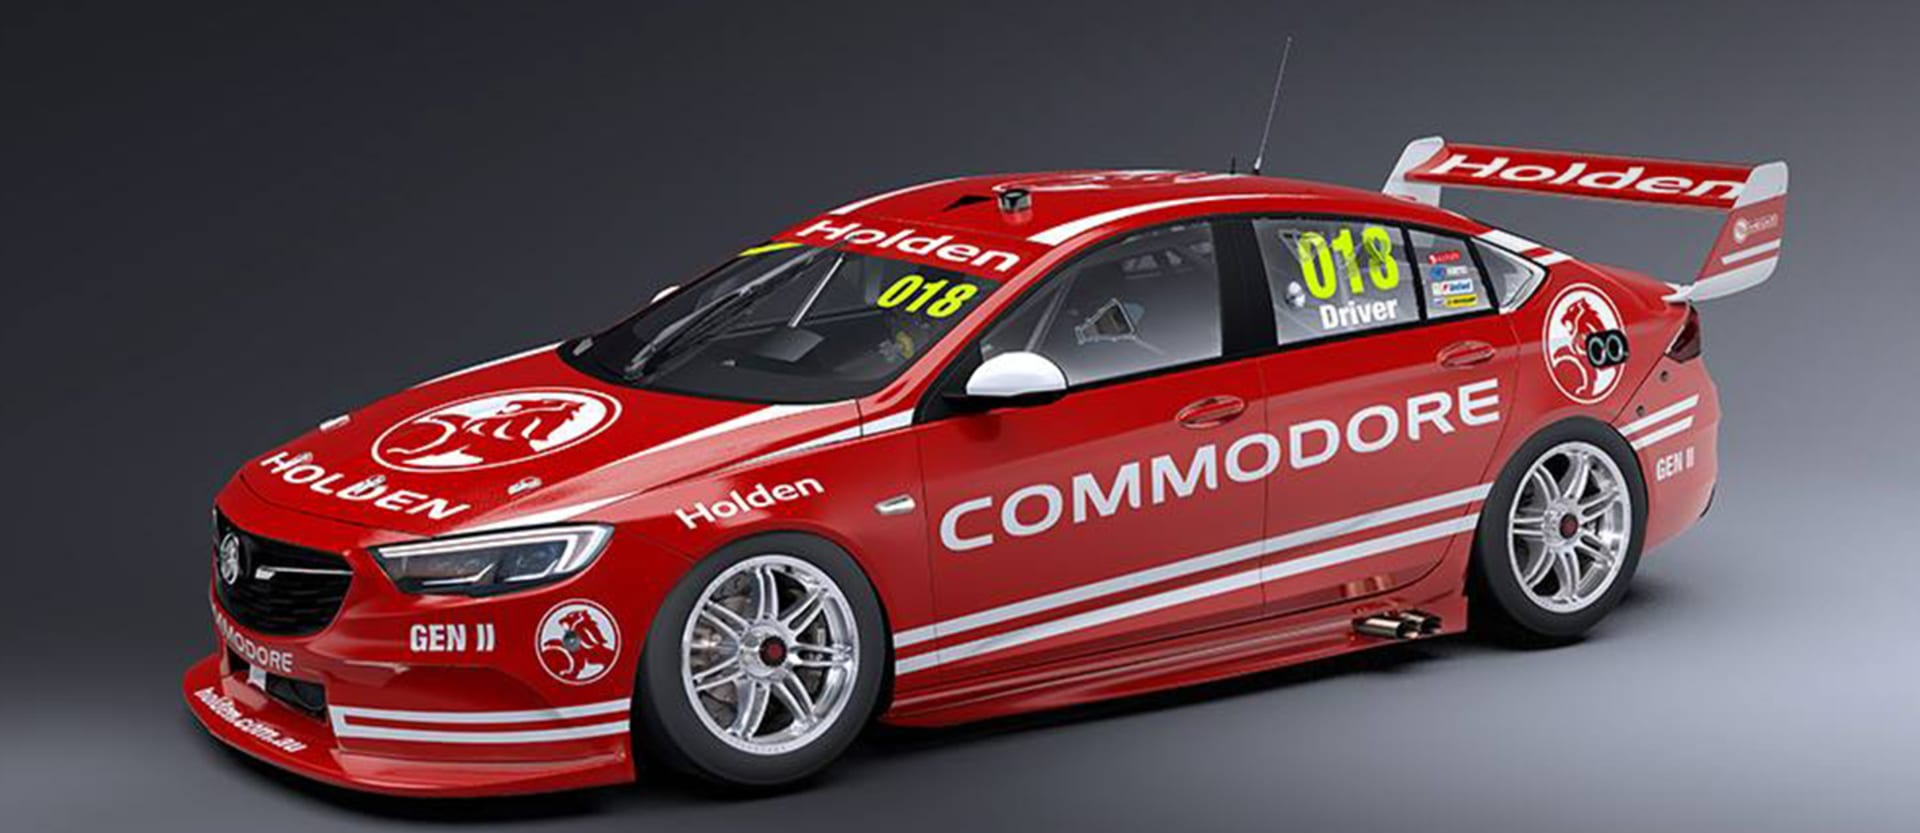 2018 Holden Commodore race car